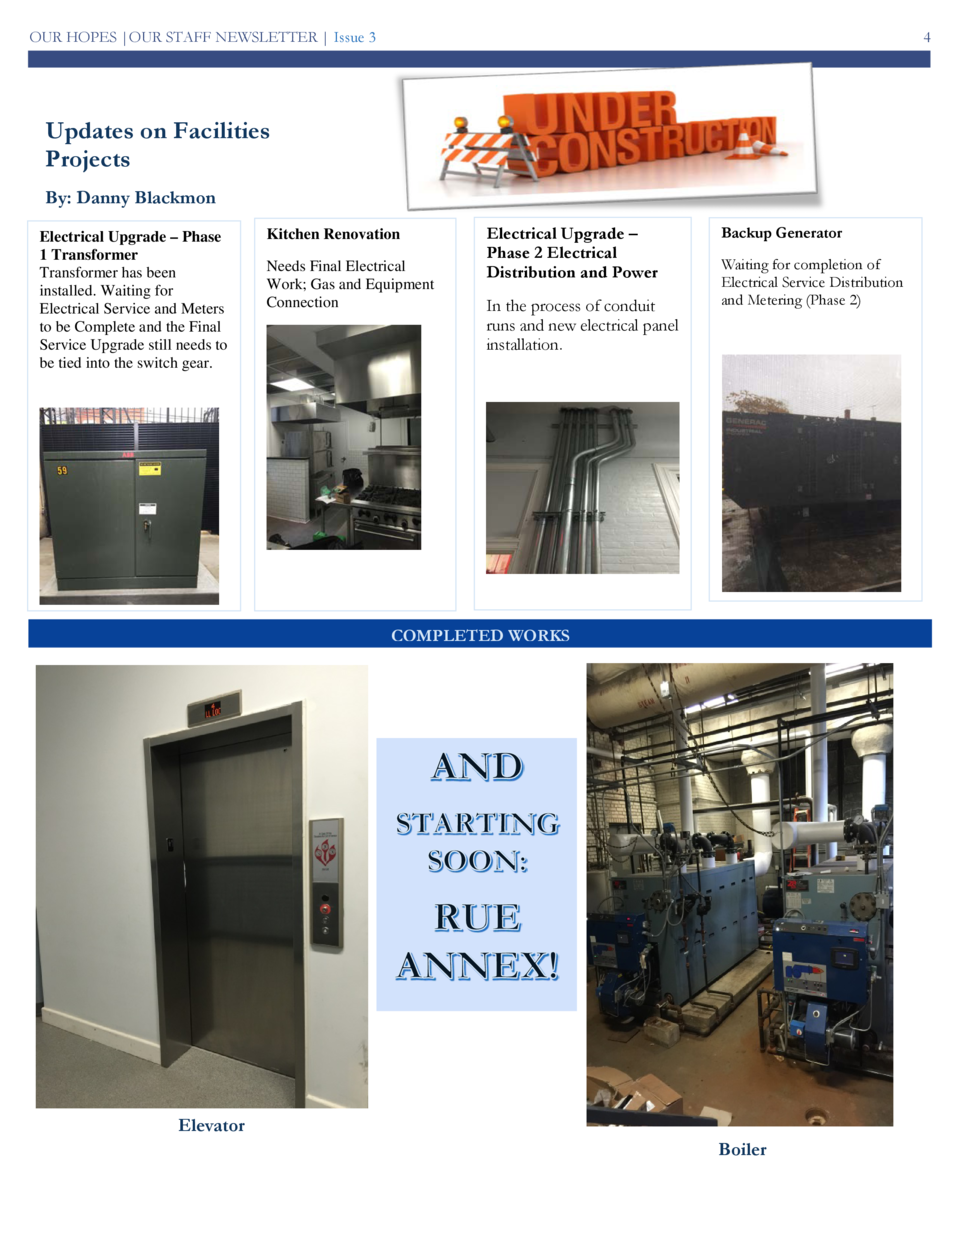 OUR HOPES  OUR STAFF NEWSLETTER   Issue 3  4  Updates on Facilities Projects By  Danny Blackmon Electrical Upgrade     Pha...